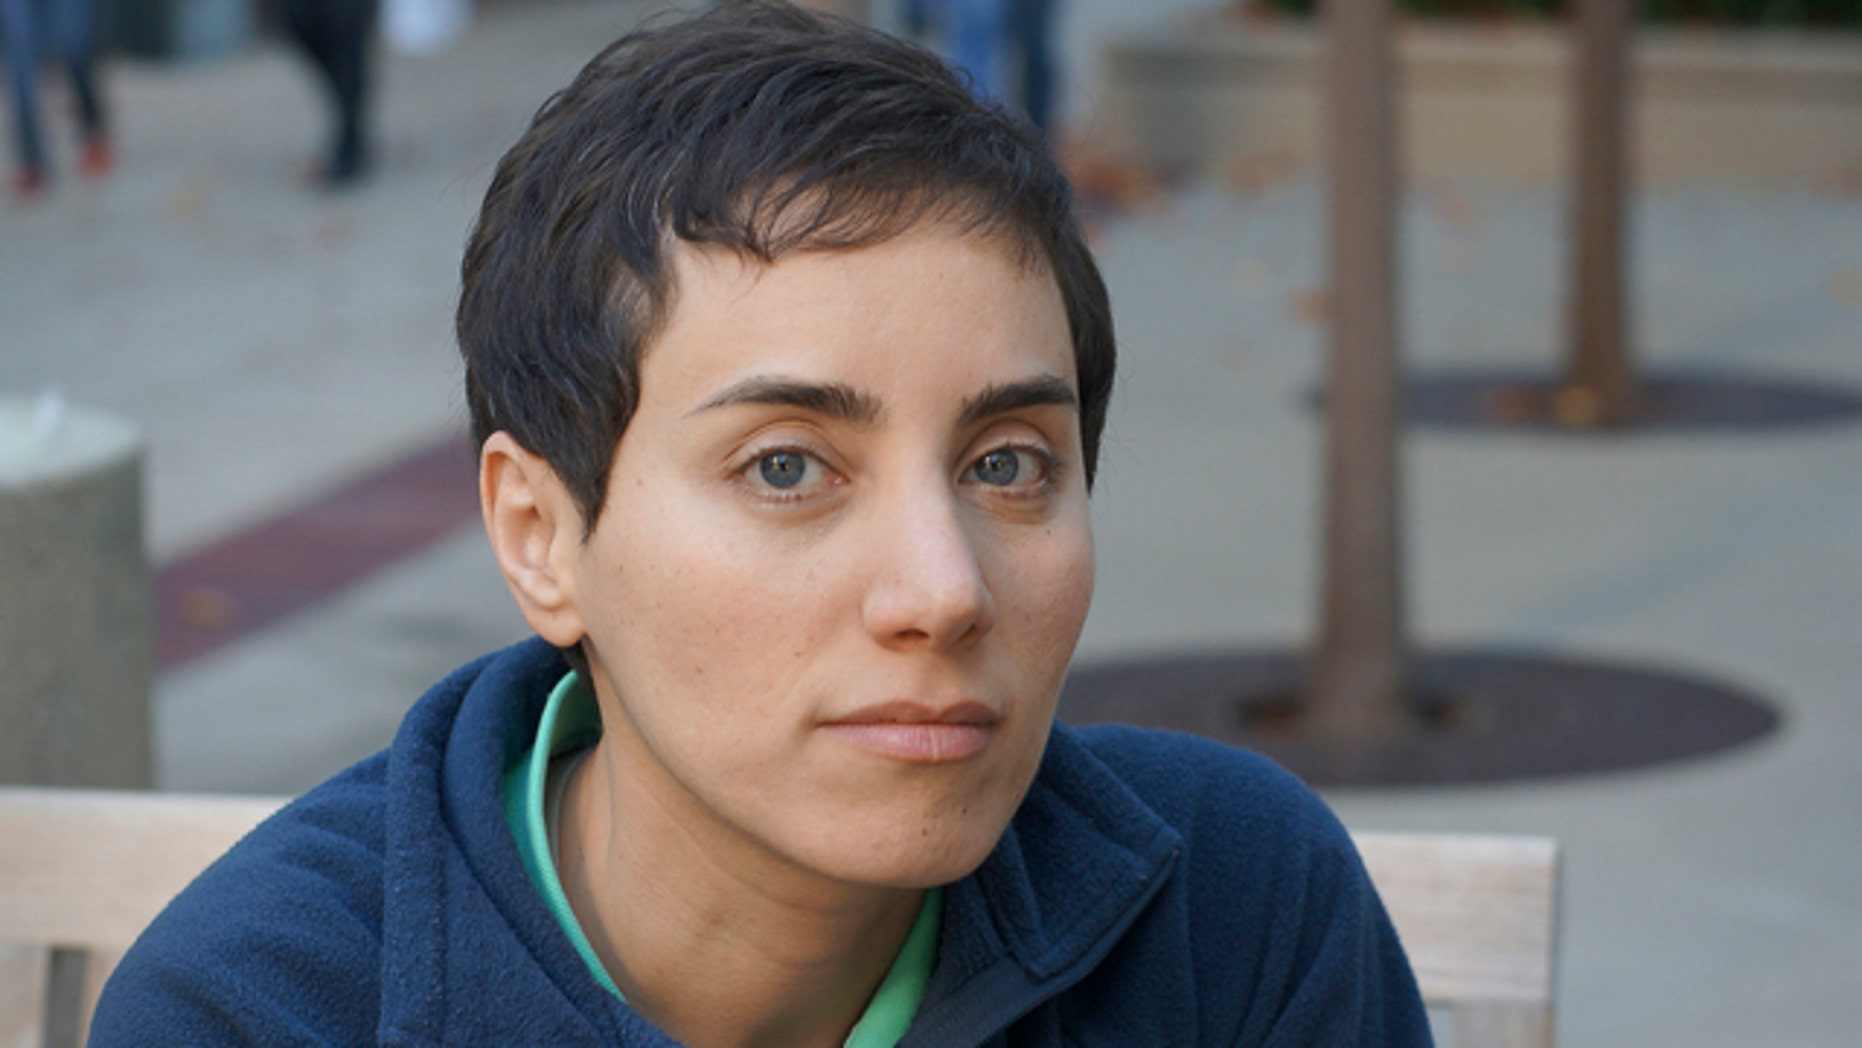 This undated photo provided by Professor Maryam Mirzakhani via Stanford shows her on the university's campus. On Wednesday, Aug. 13, 2014, the Iranian-born Stanford University professor became the first woman to win math's highest honor, the Fields Medal. (AP Photo/Maryam Mirzakhani via Stanford)